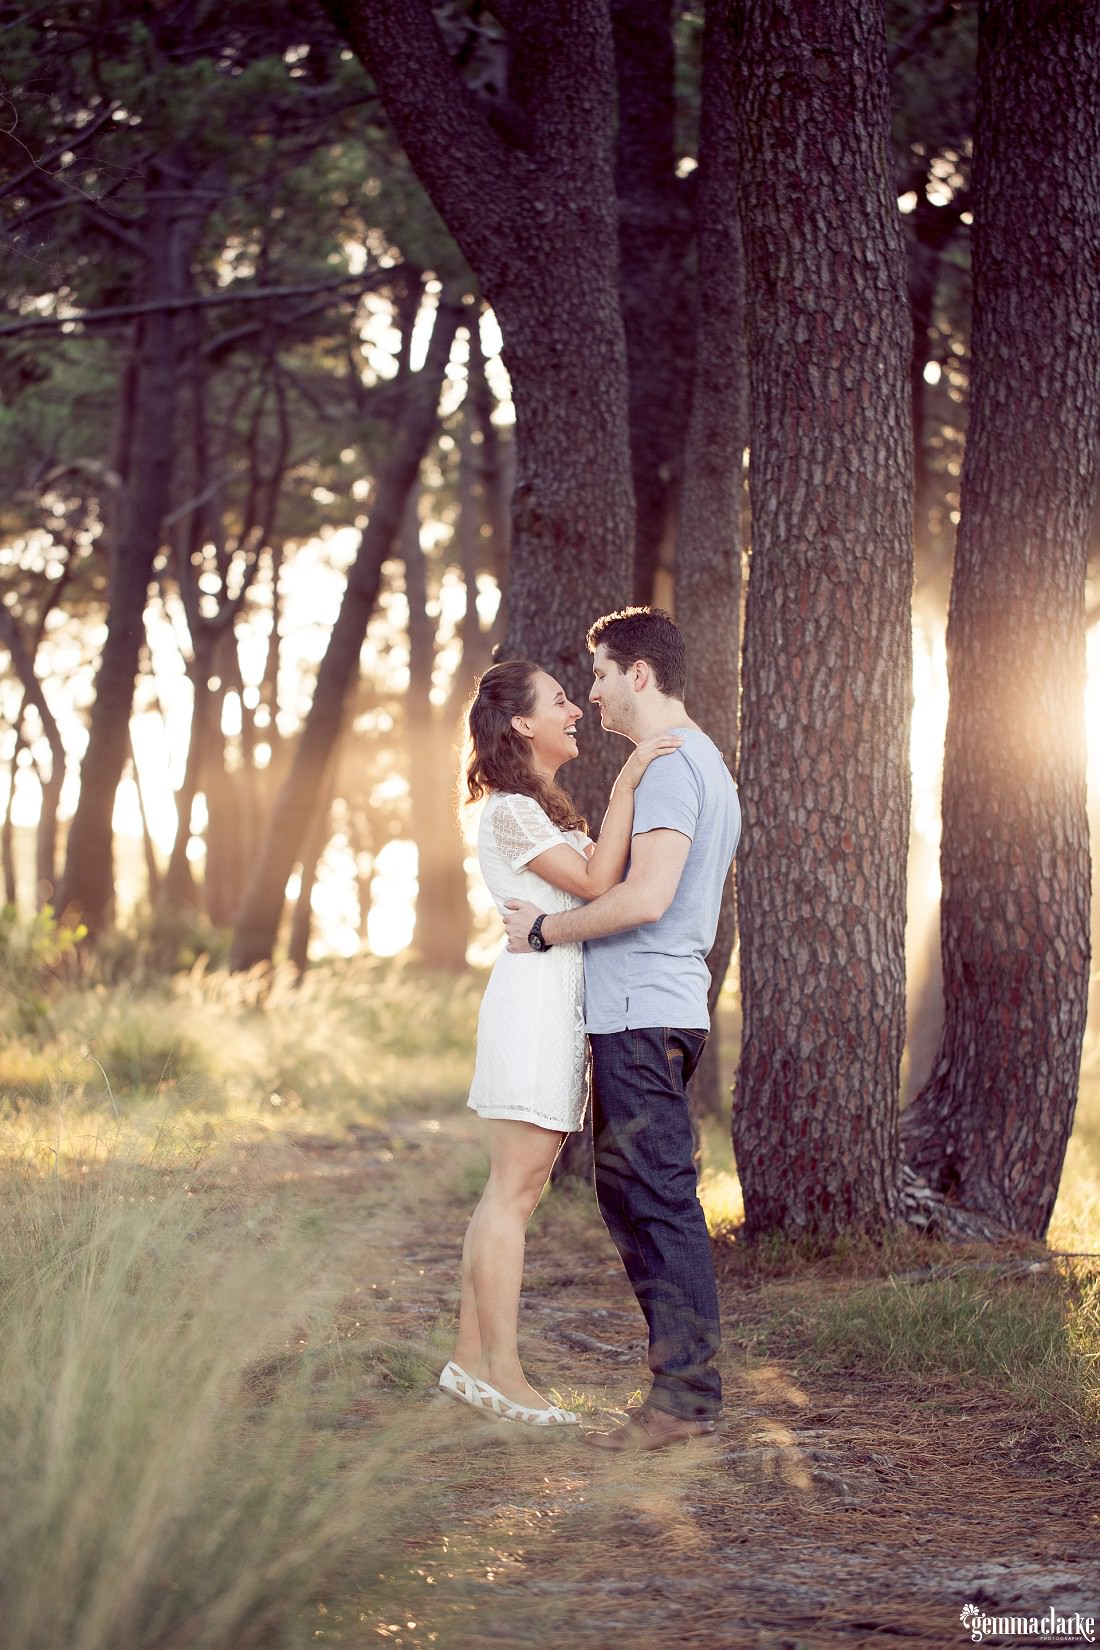 gemmaclarkephotography_centennial-park-engagement-photos_luisa-and-nick_0011